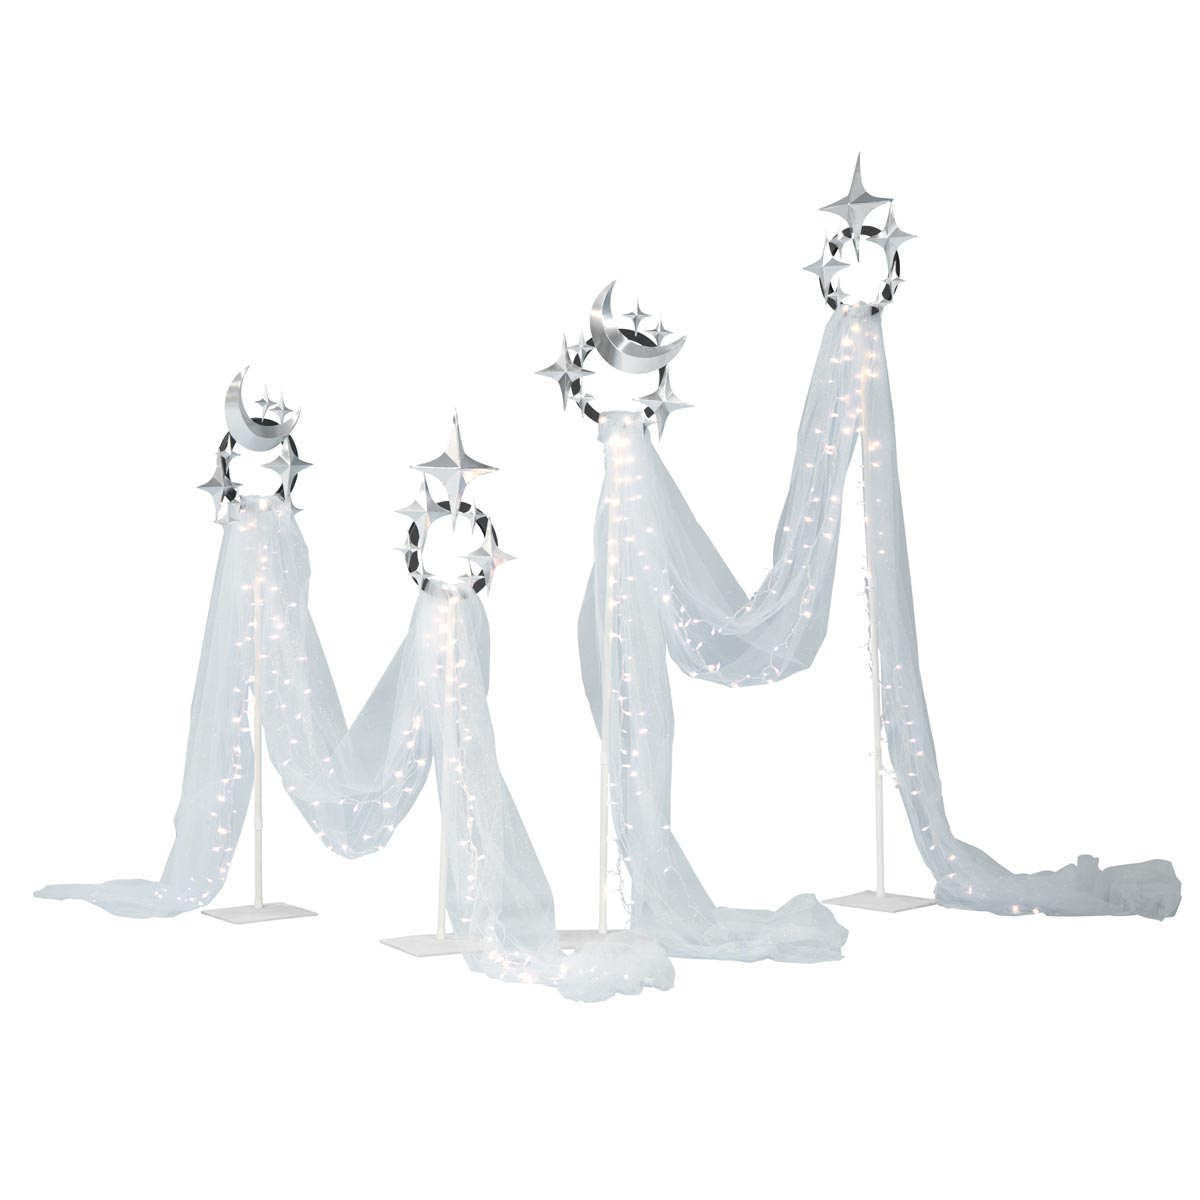 Starlight Reverie Tall Stands Kit (set of 4)